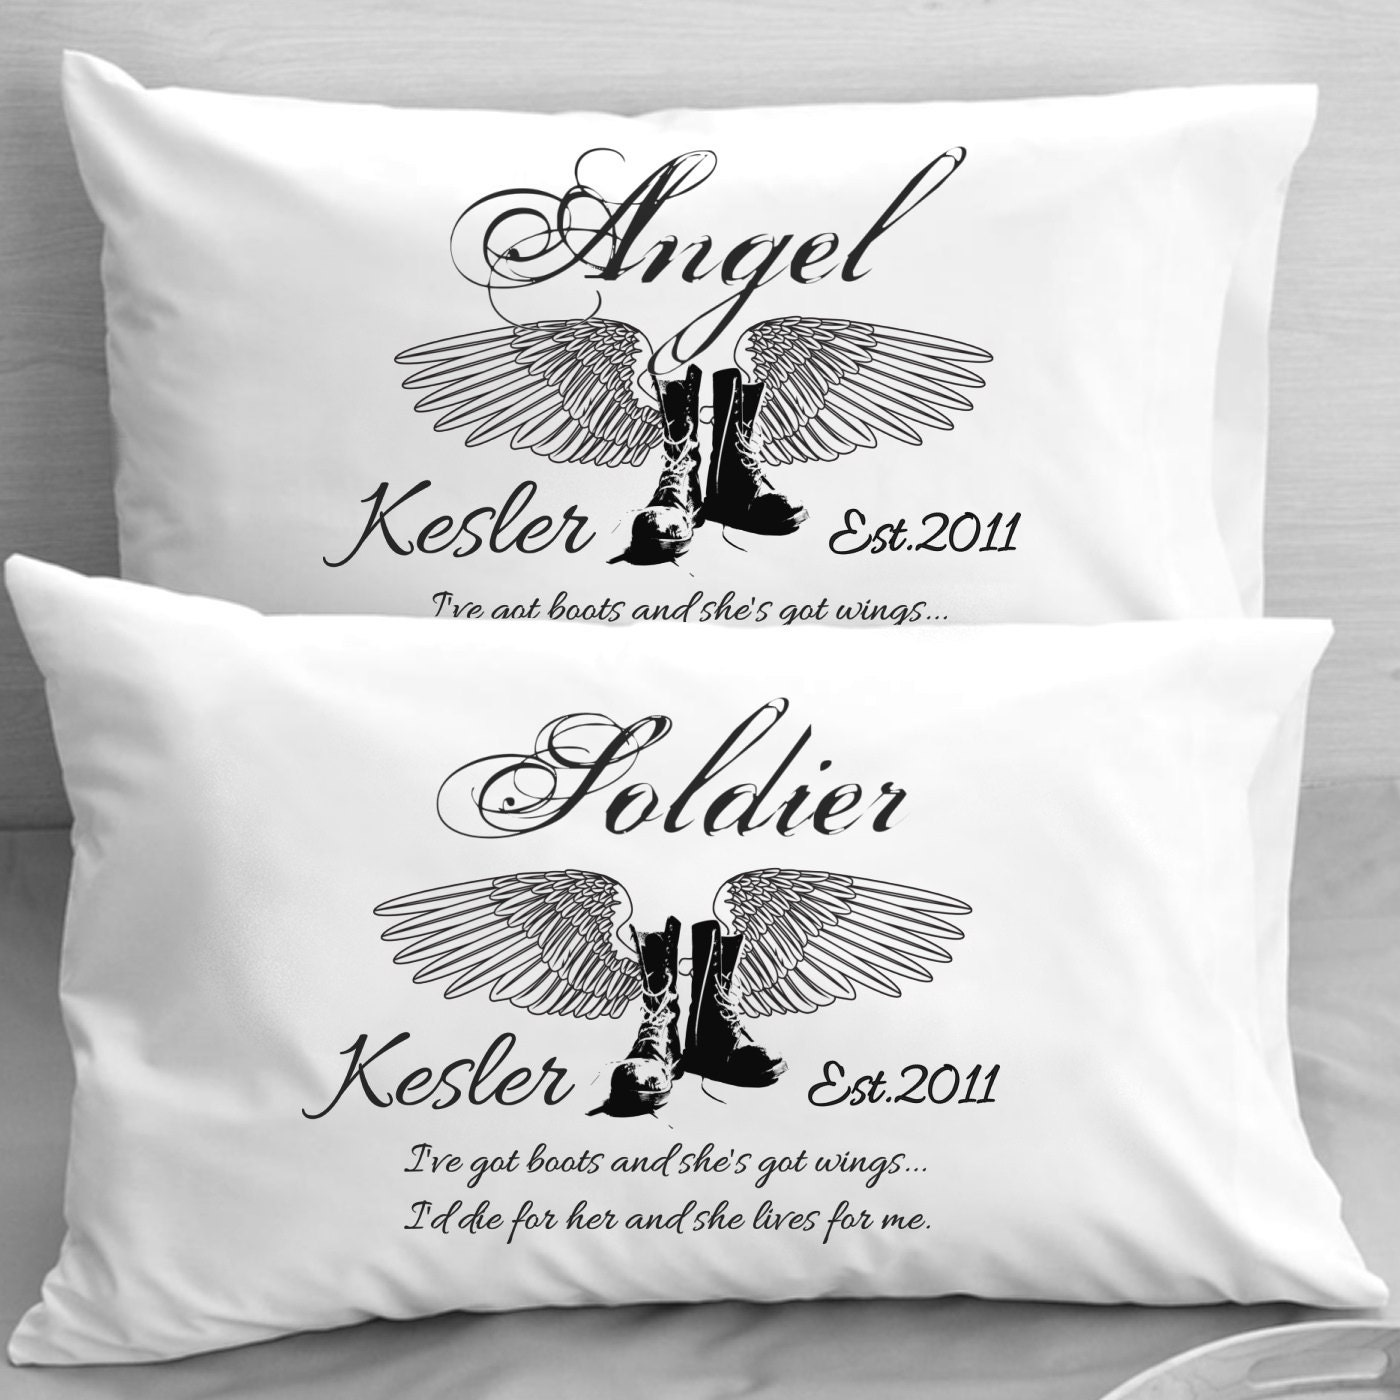 Wedding Gift Ideas For Military Couples : Angel Military Couple Personalized Pillowcases Boots and Wings Wedding ...